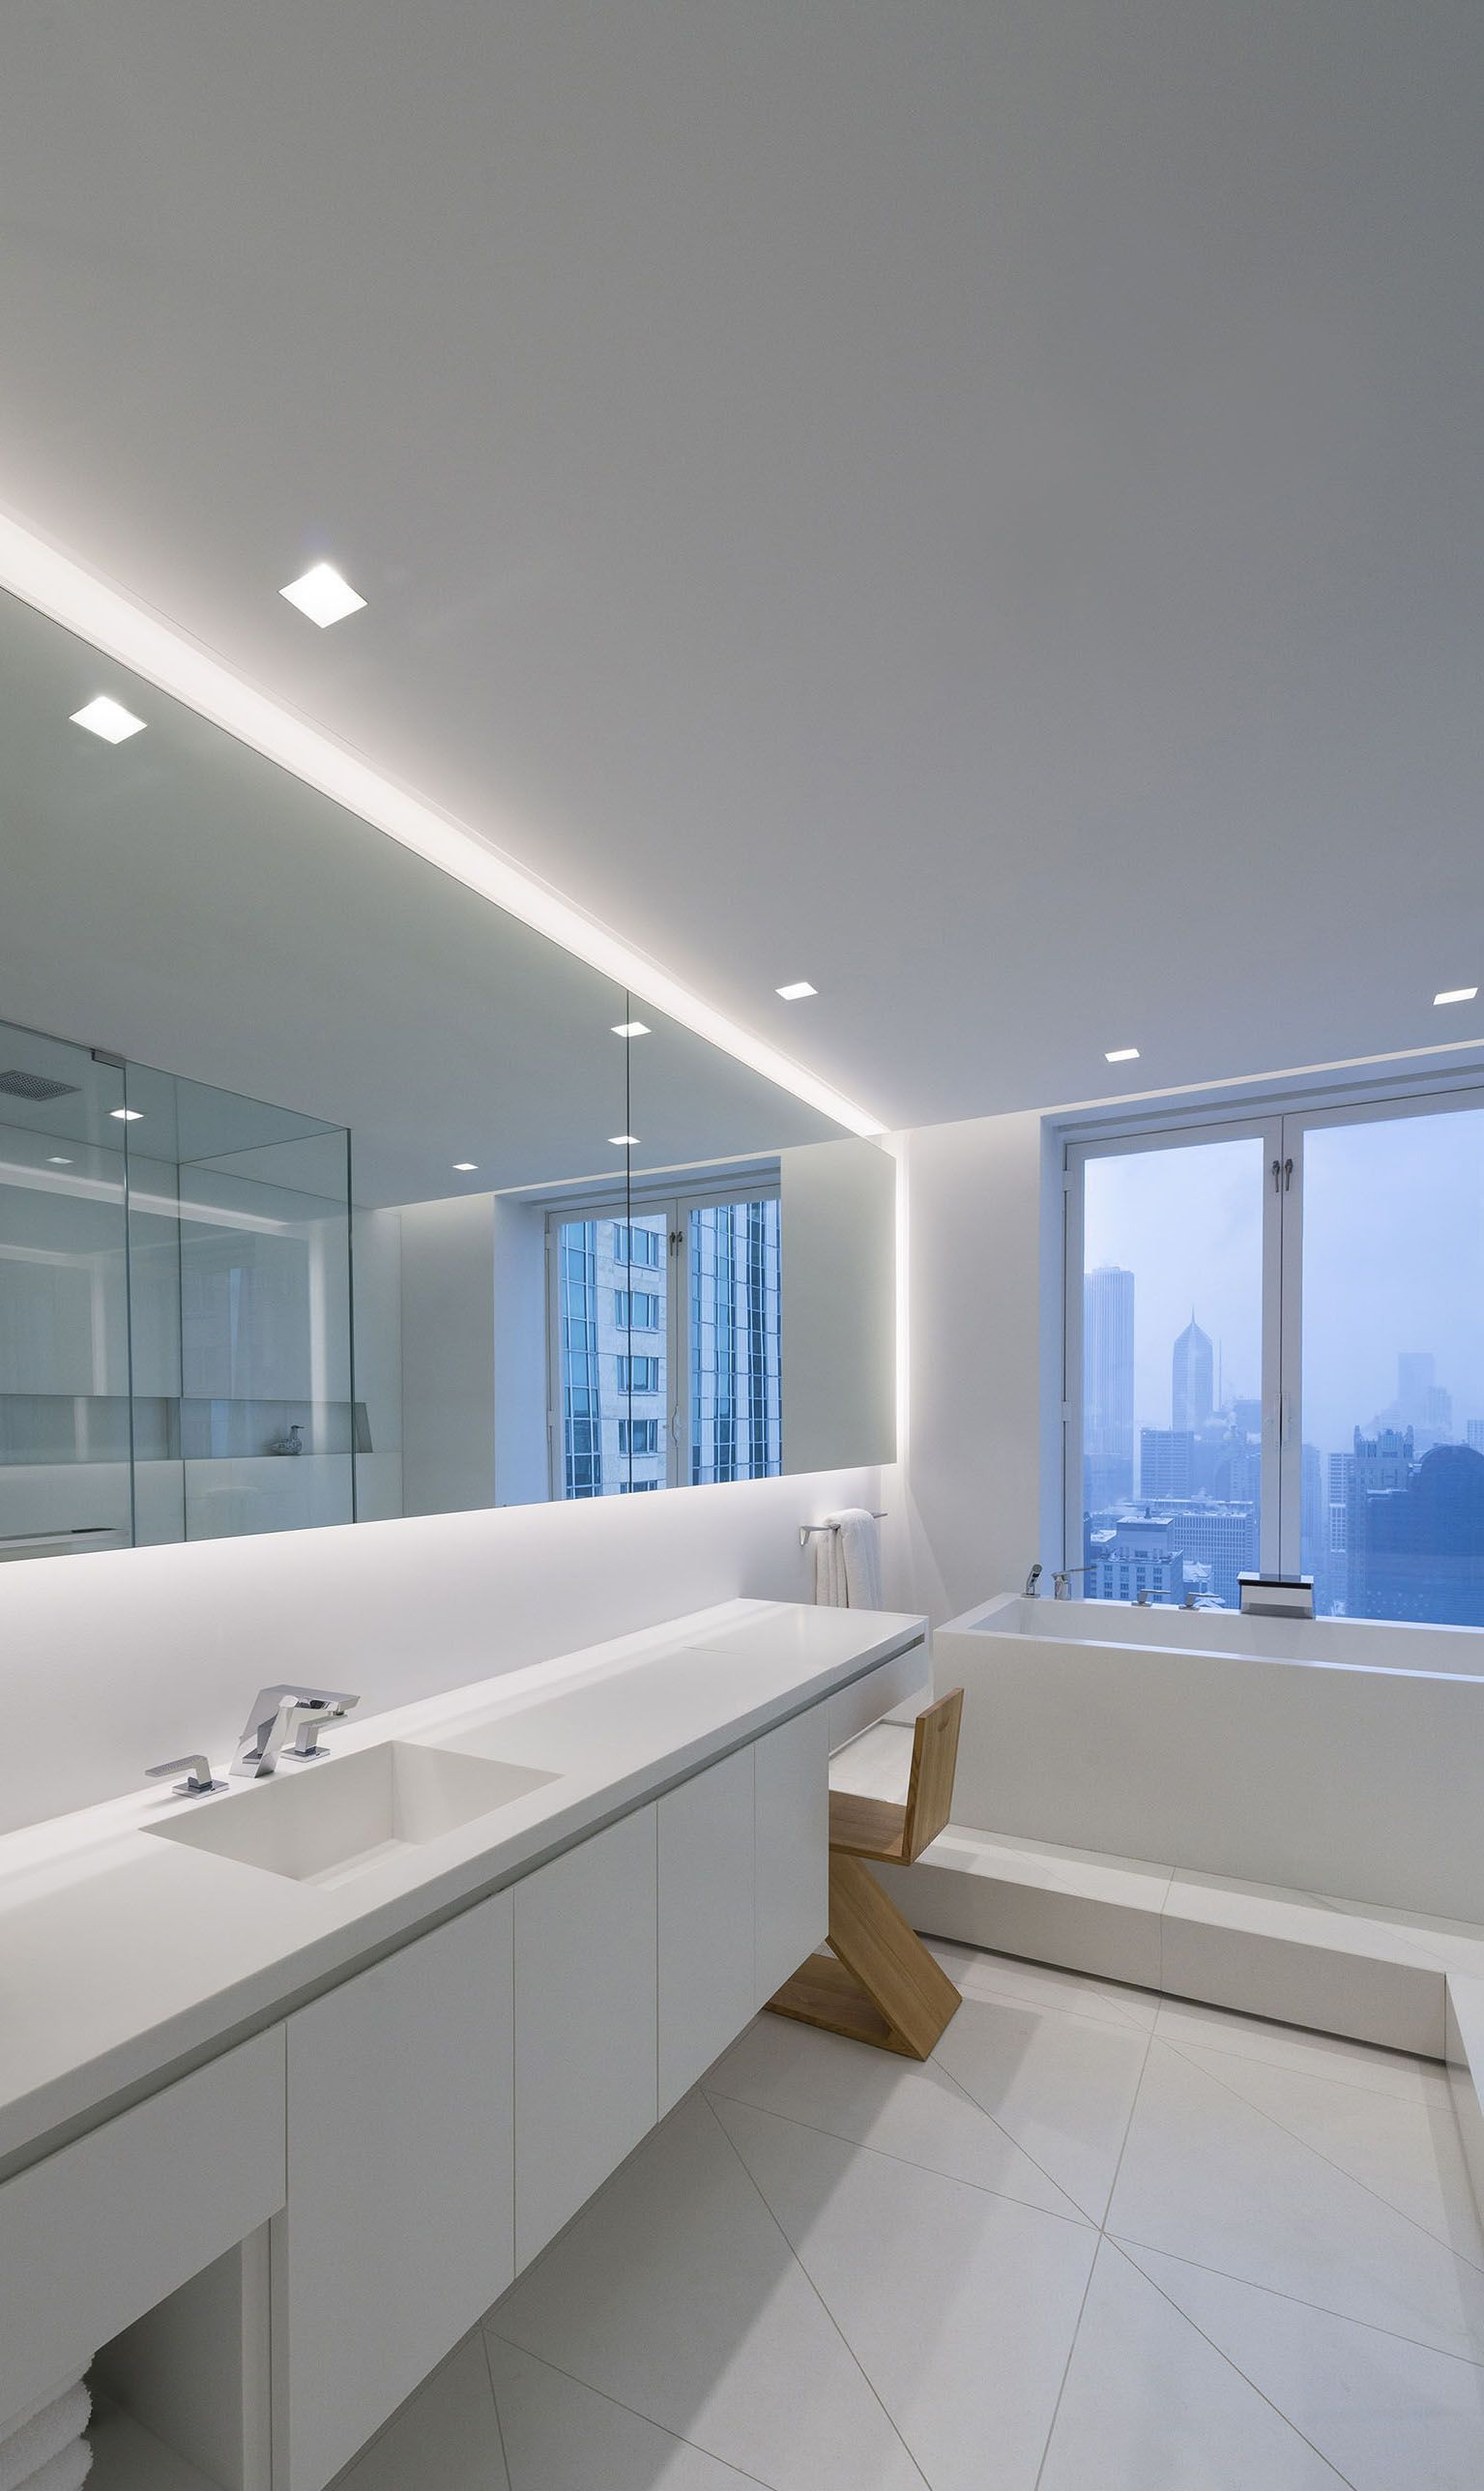 A Lighting Idea For Contempporary Bathrooms Modern Led Lighting.  Description: Bathroom Mirrors And Lighting Ideas ... Part 44